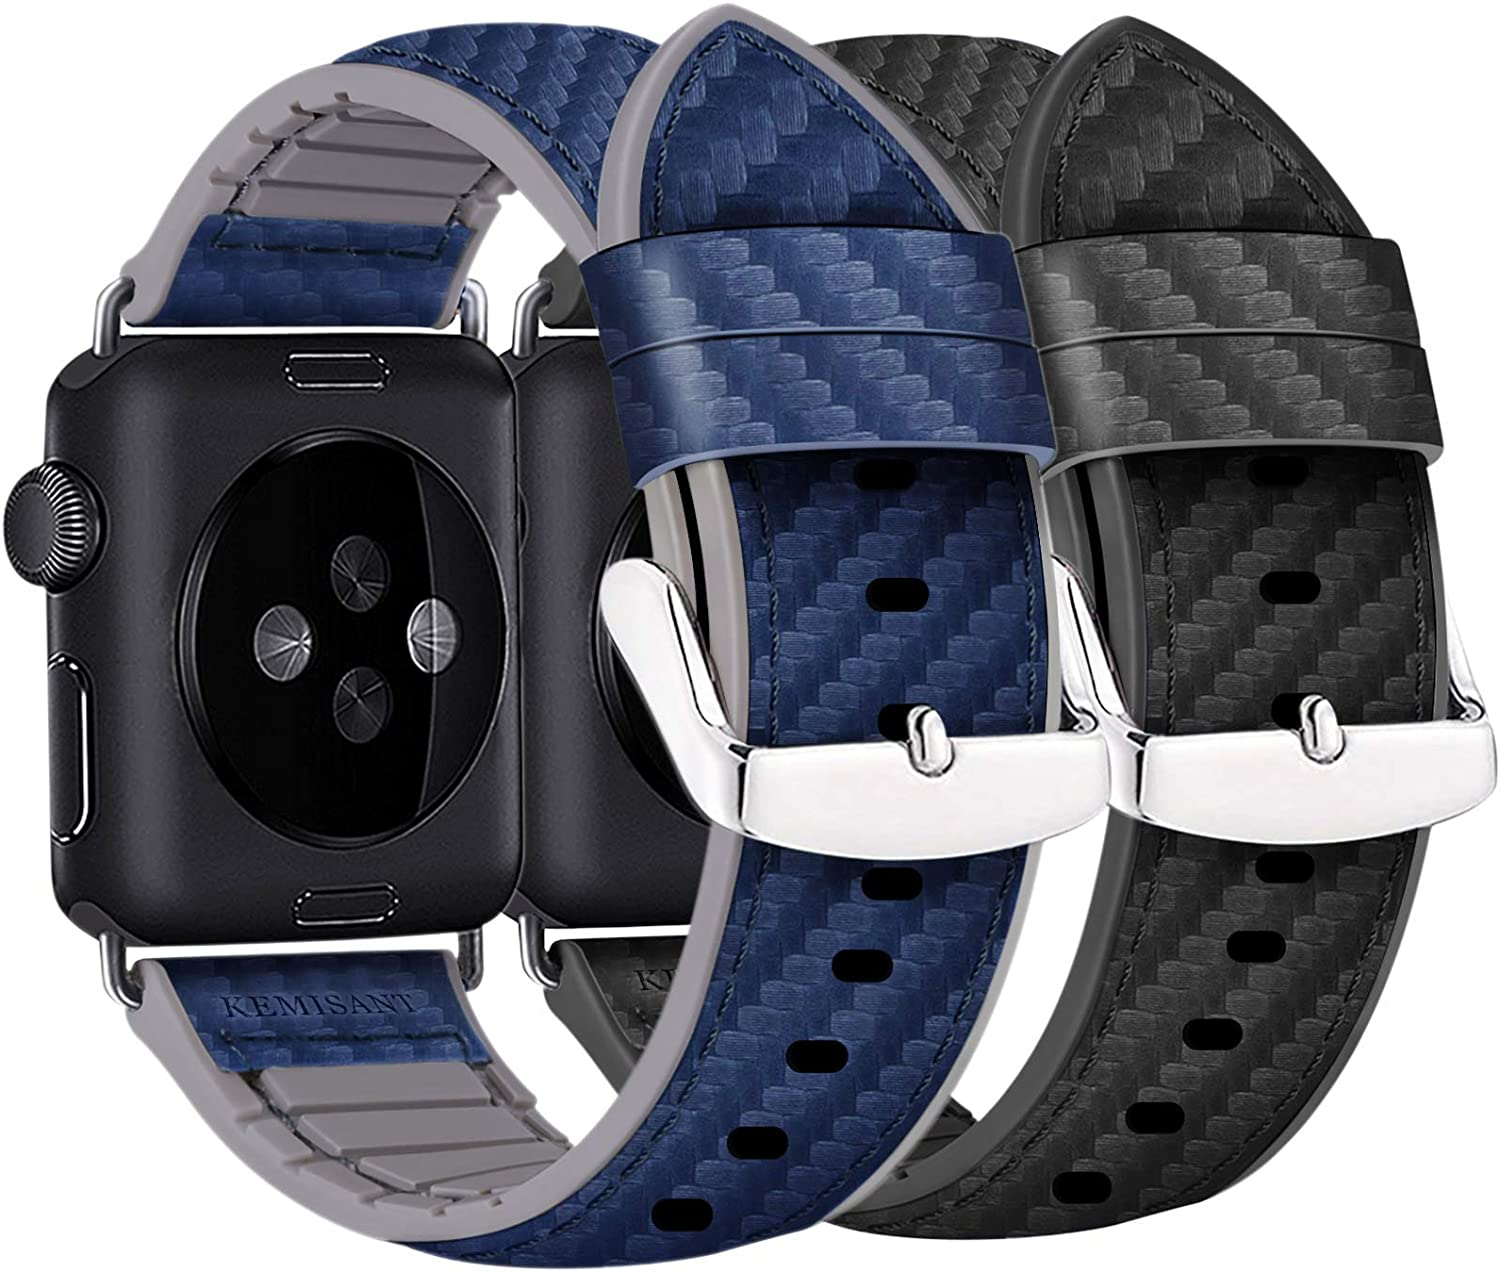 2 Gift-Pack Bands Compatible for Apple Watch Band 38mm/40mm/42mm/44mm,Kemisant Sports Watch Strap Replacement for iWatch 5/4/3/2/1,Top Grain Leather&Silicone Based